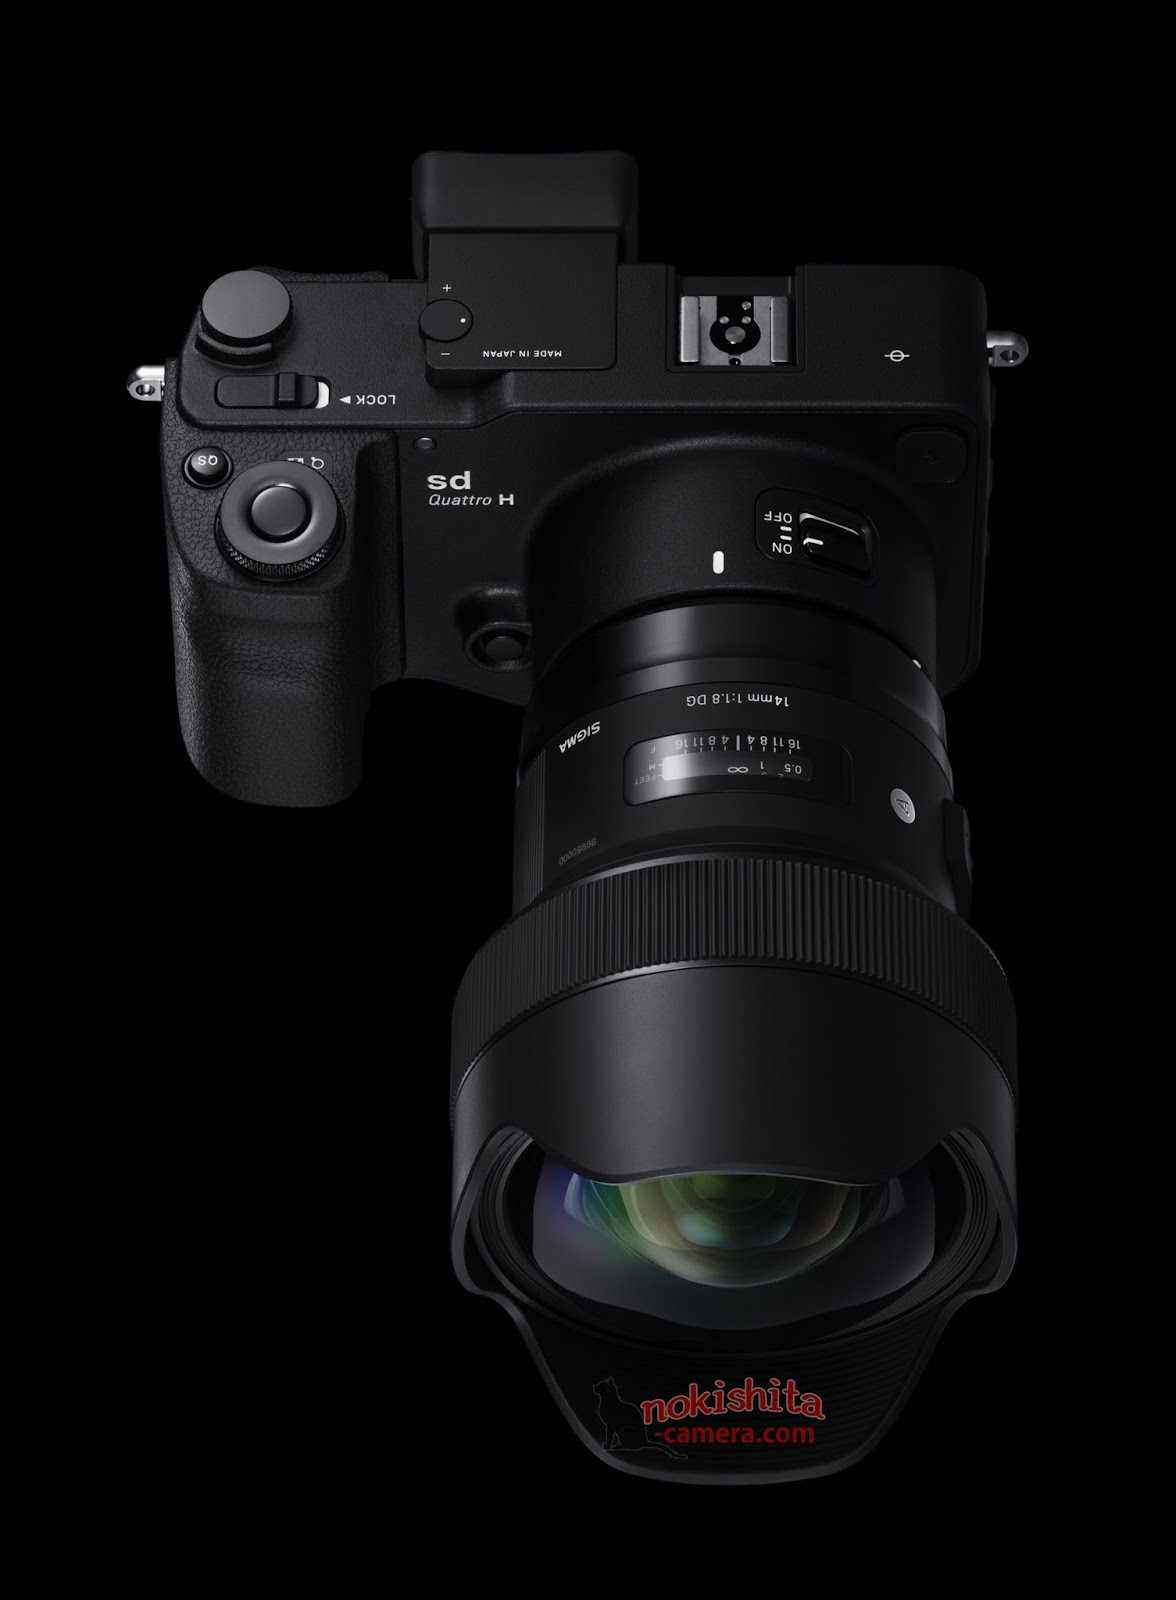 Sigma-14mm-f1.8-DG-HSM-Art-full-frame-DSLR-lens1